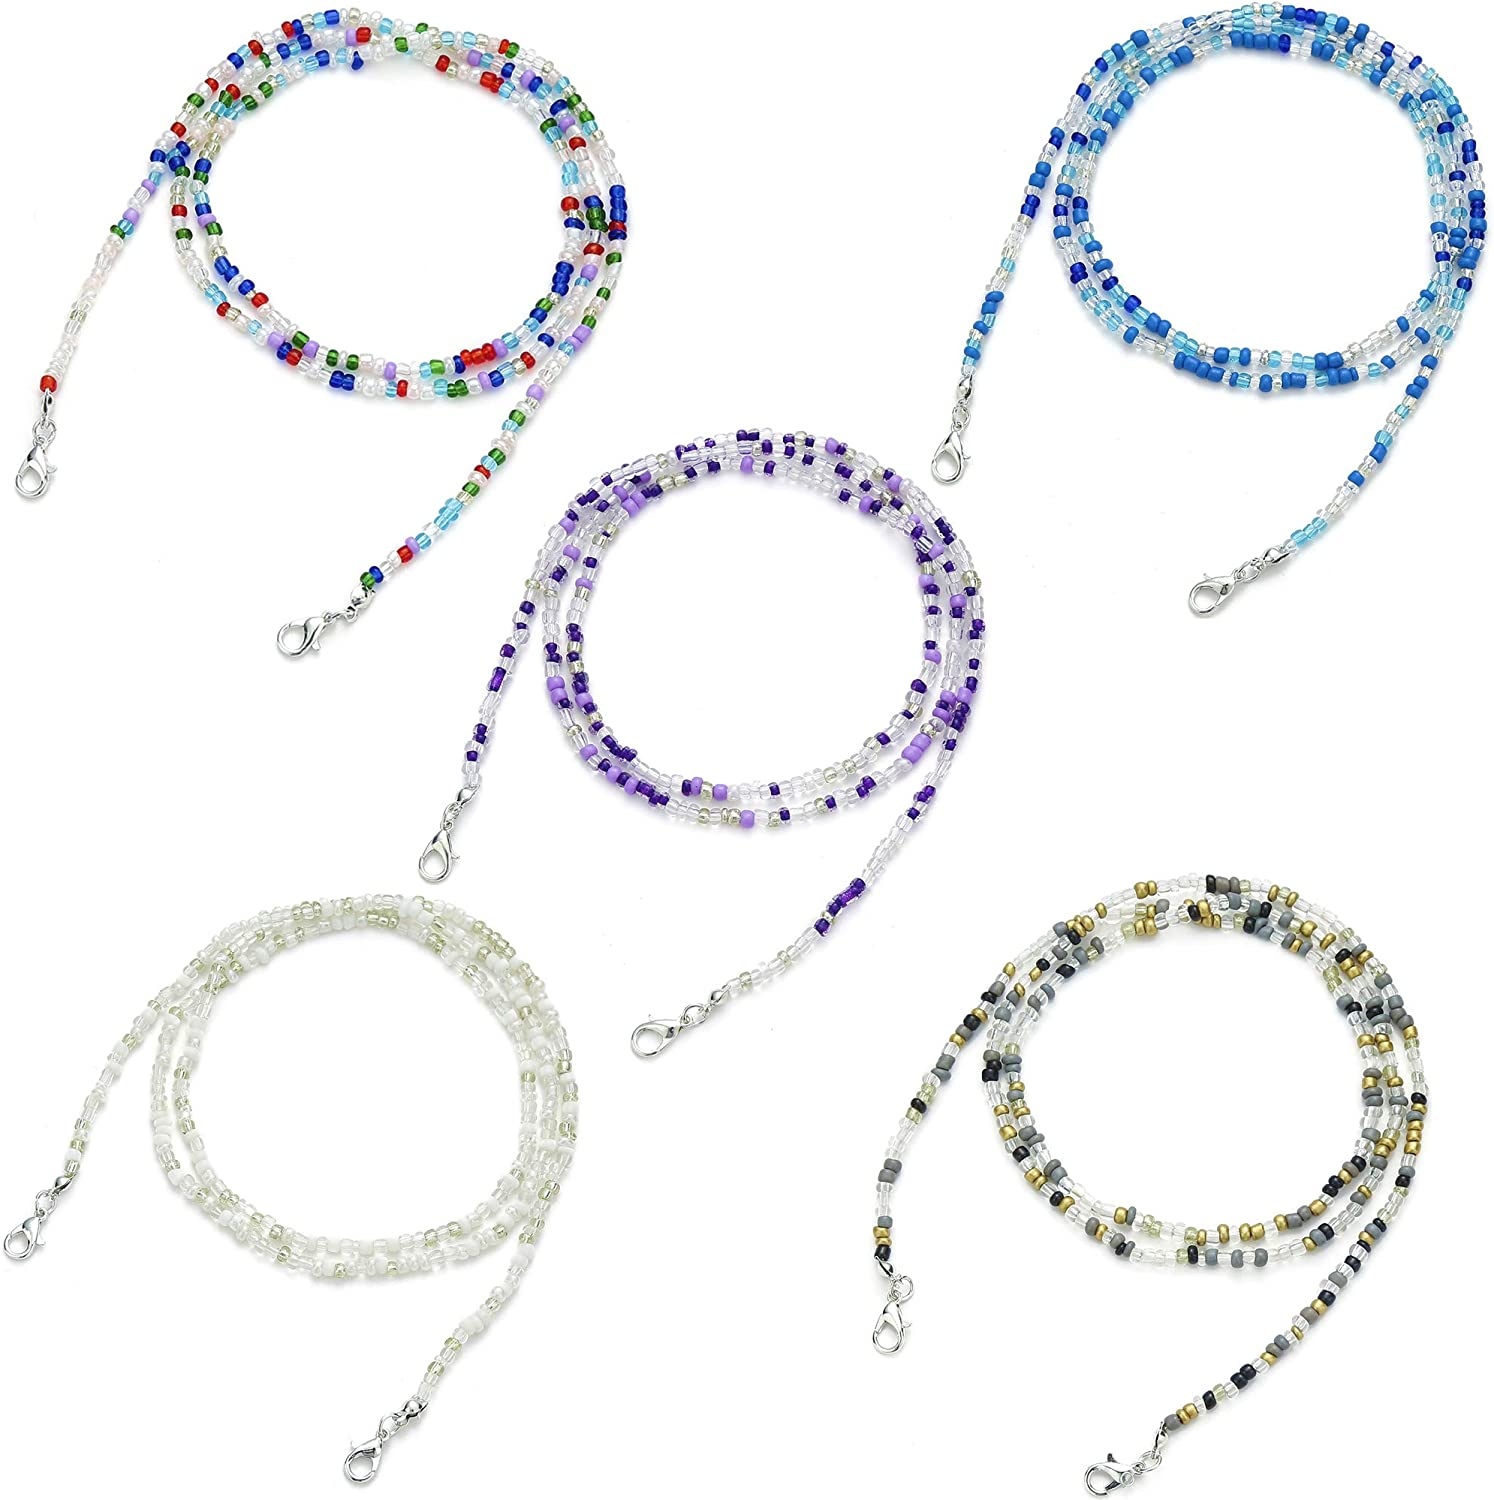 Glaring 4-5 Pack Face Mask Lanyard Chain Strap Colorful Beads Chain Holder for Women Kids Comfortable Around The Neck